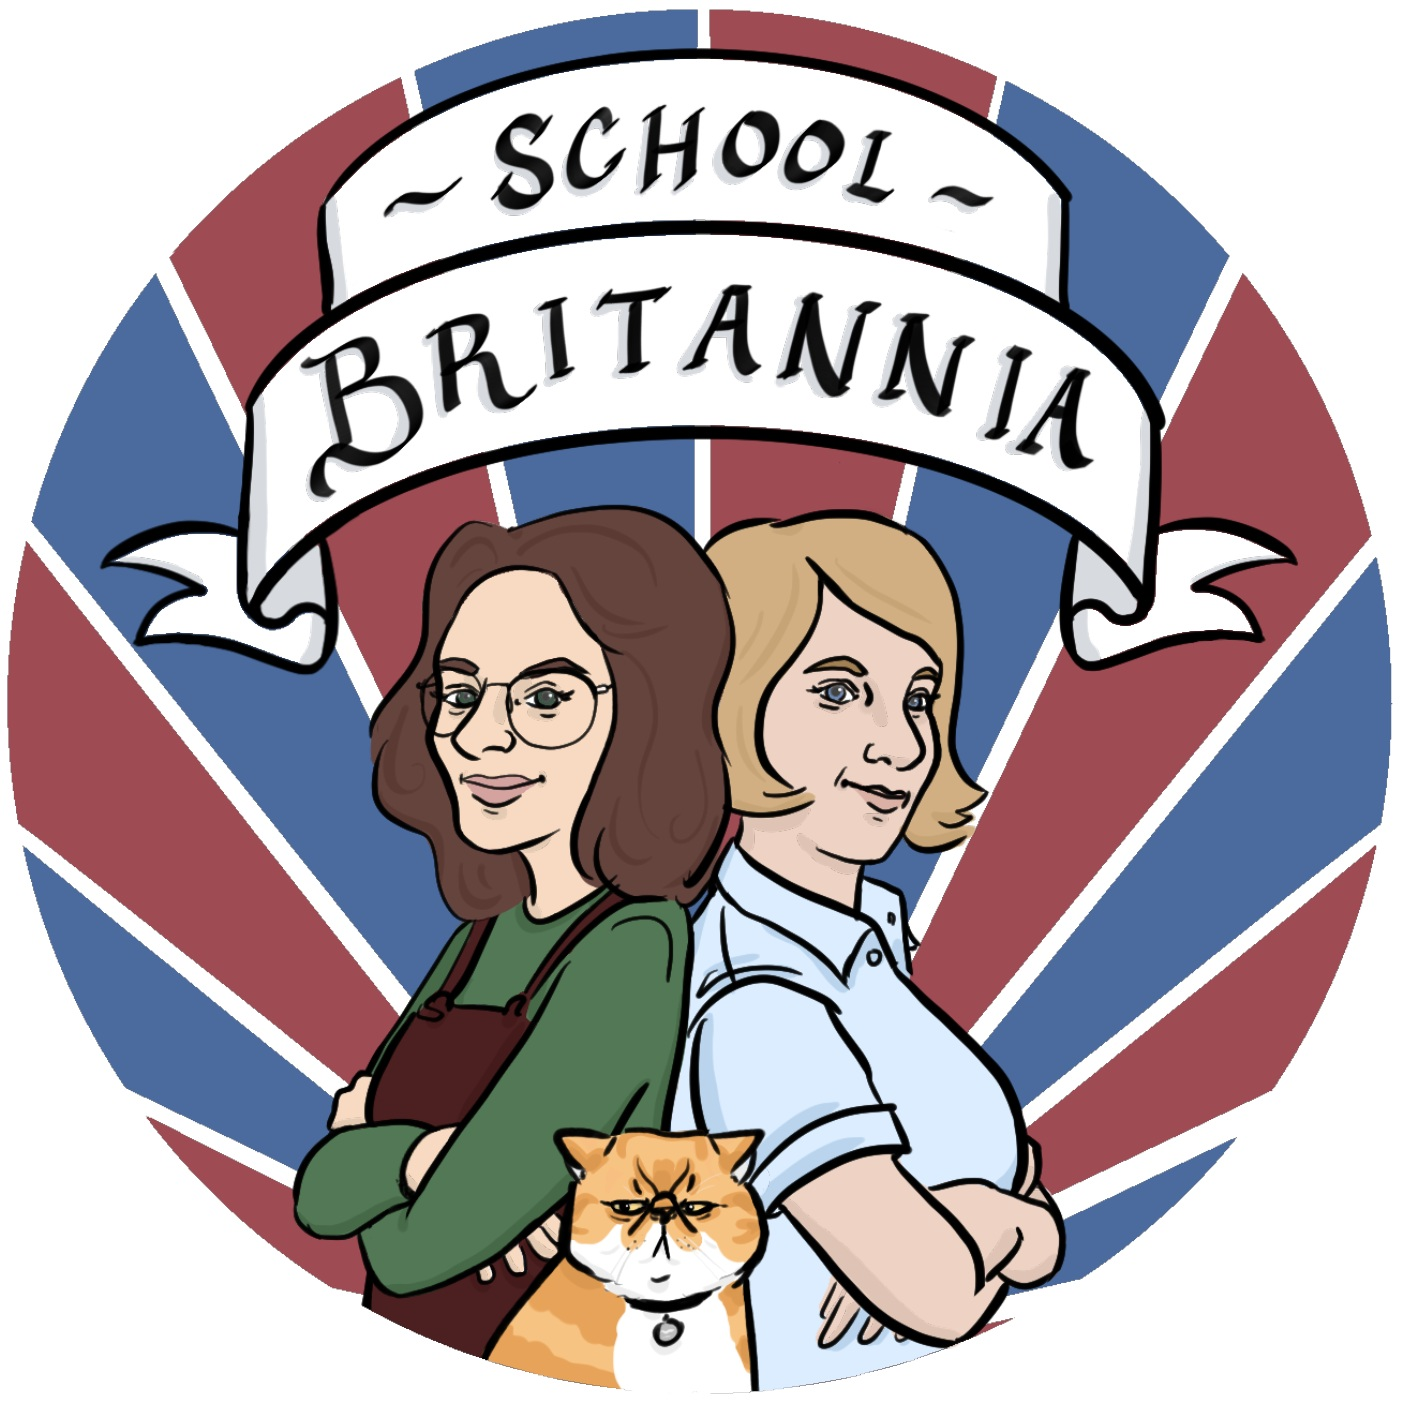 - School BritanniaEleanor and Claire of the podcast School Britannia asked me to make a logo for them (which happened to include Claire's grumpy cat, Gremlin). Check out their podcast here or on your favorite podcast app. Digital.